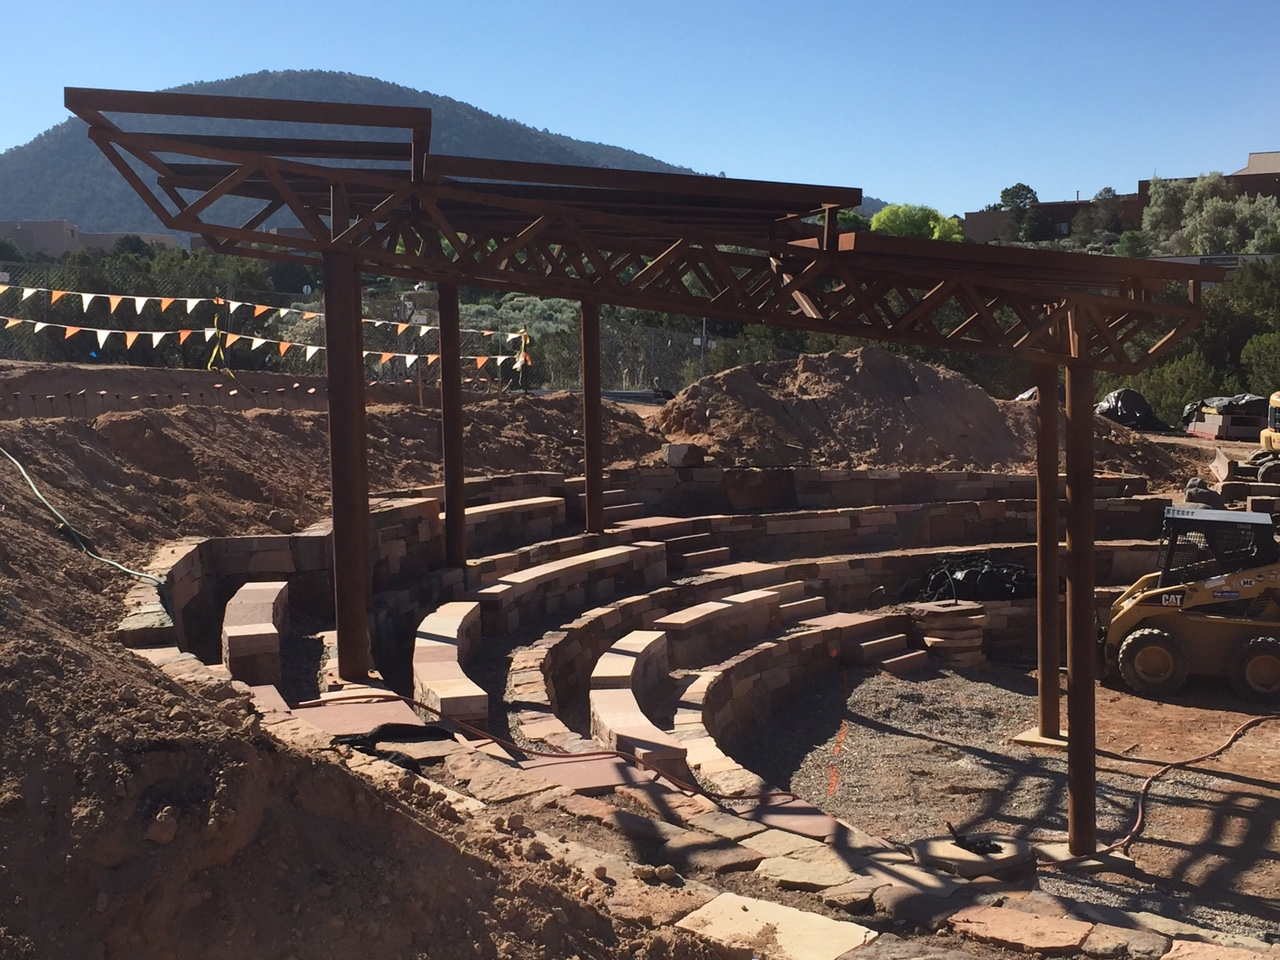 Construction at Santa Fe Botanical Garden